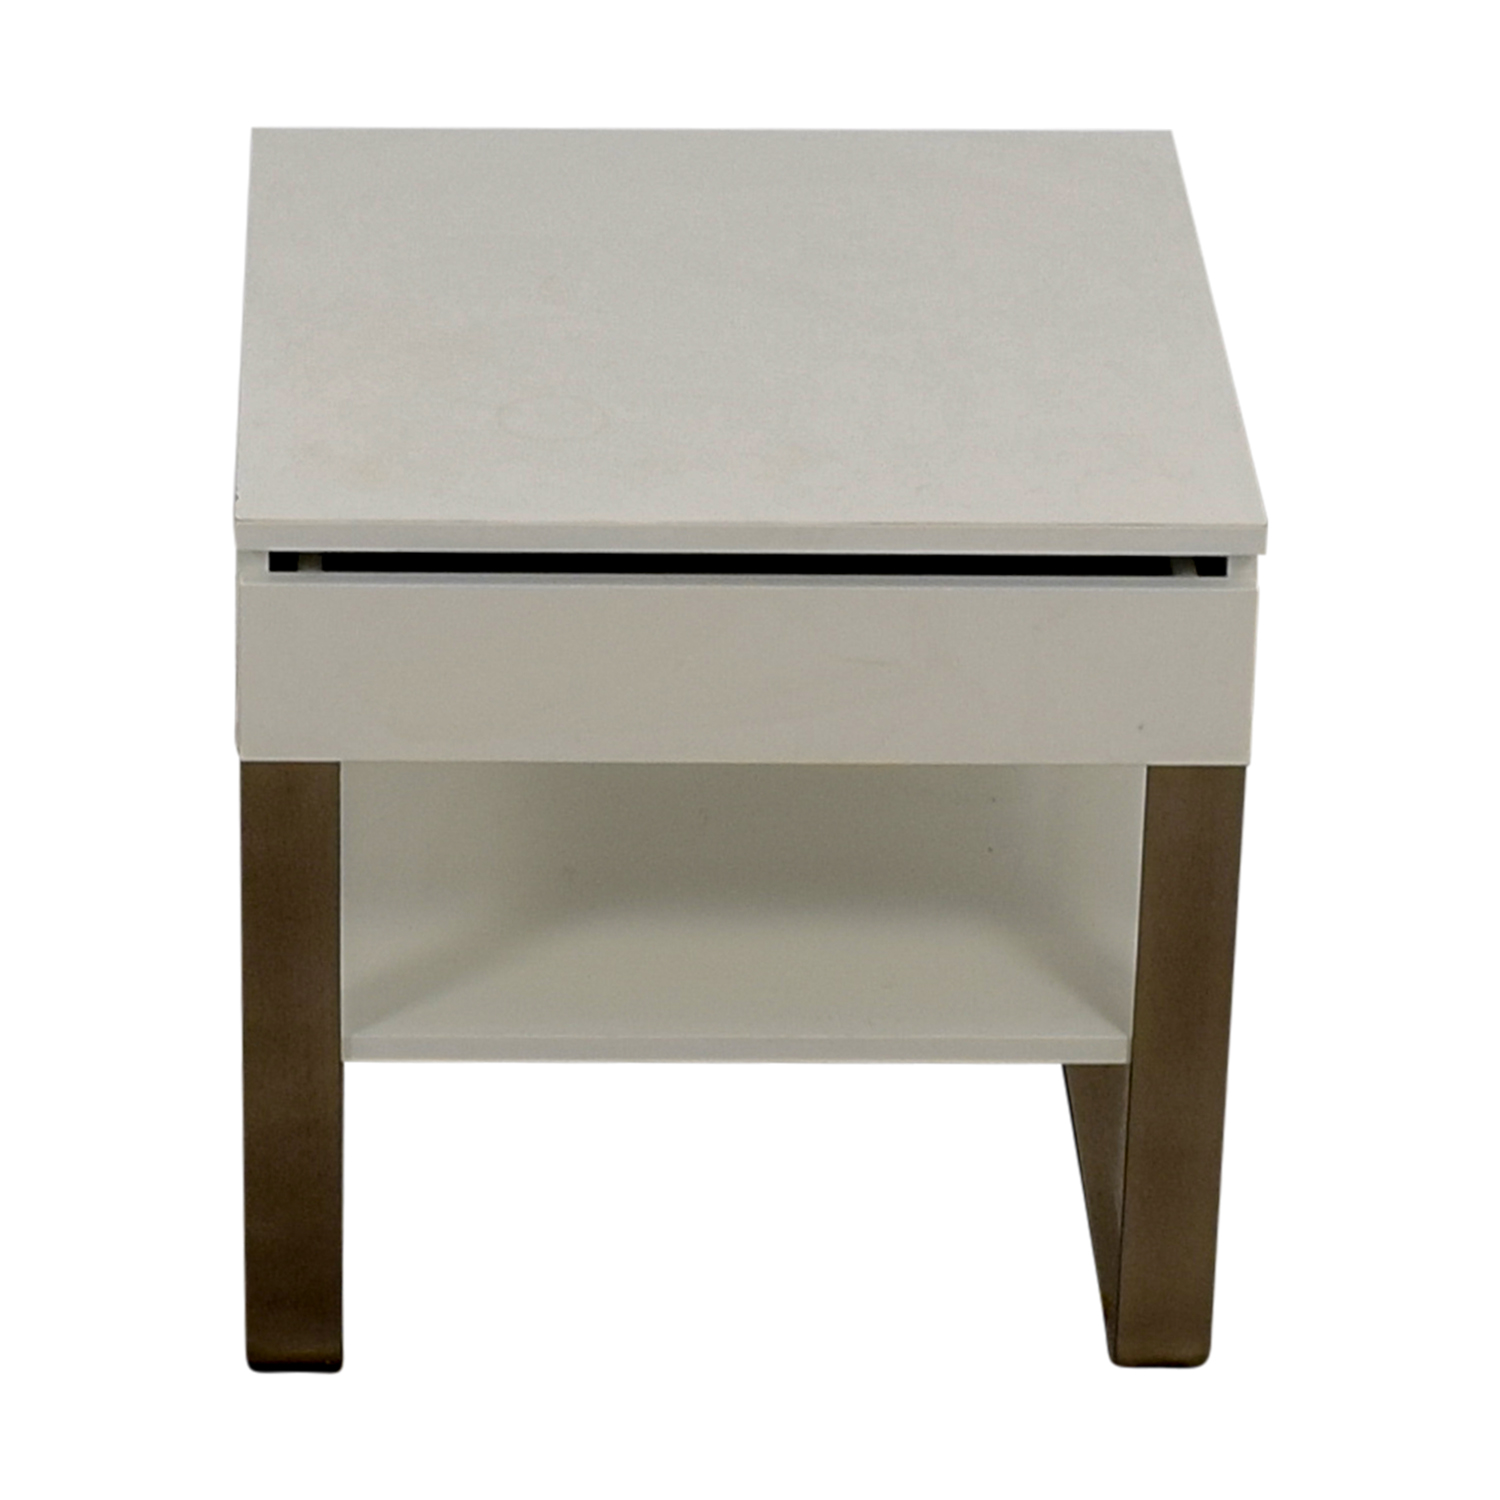 Single Drawer White Nightstand dimensions